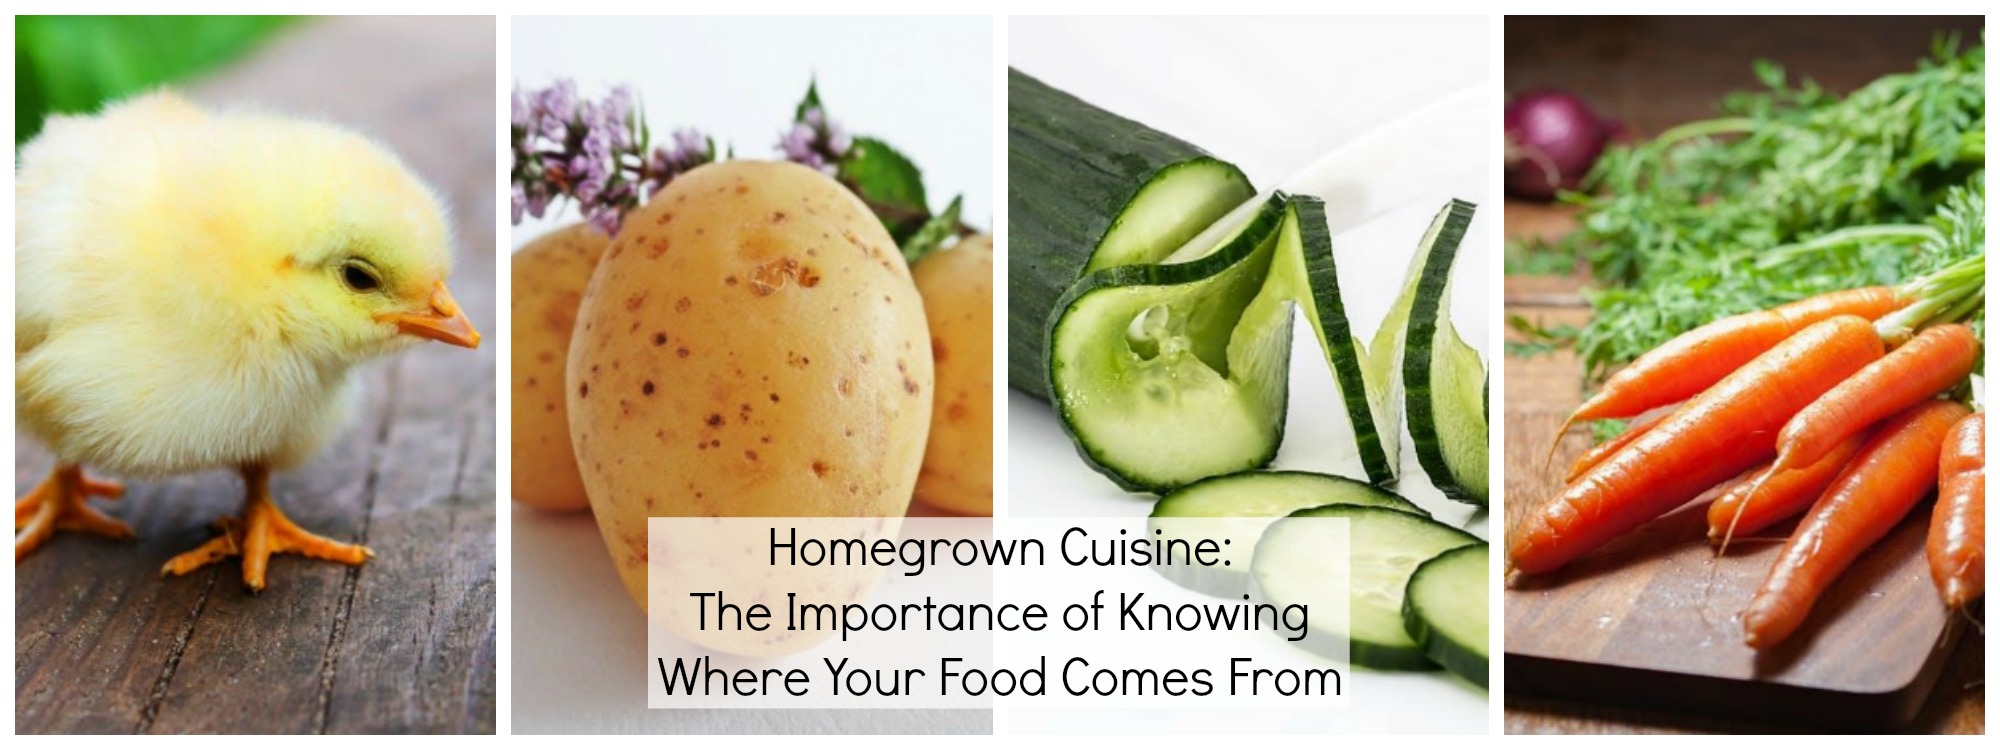 Homegrown Cuisine The Importance of Knowing Where Your Food Comes From